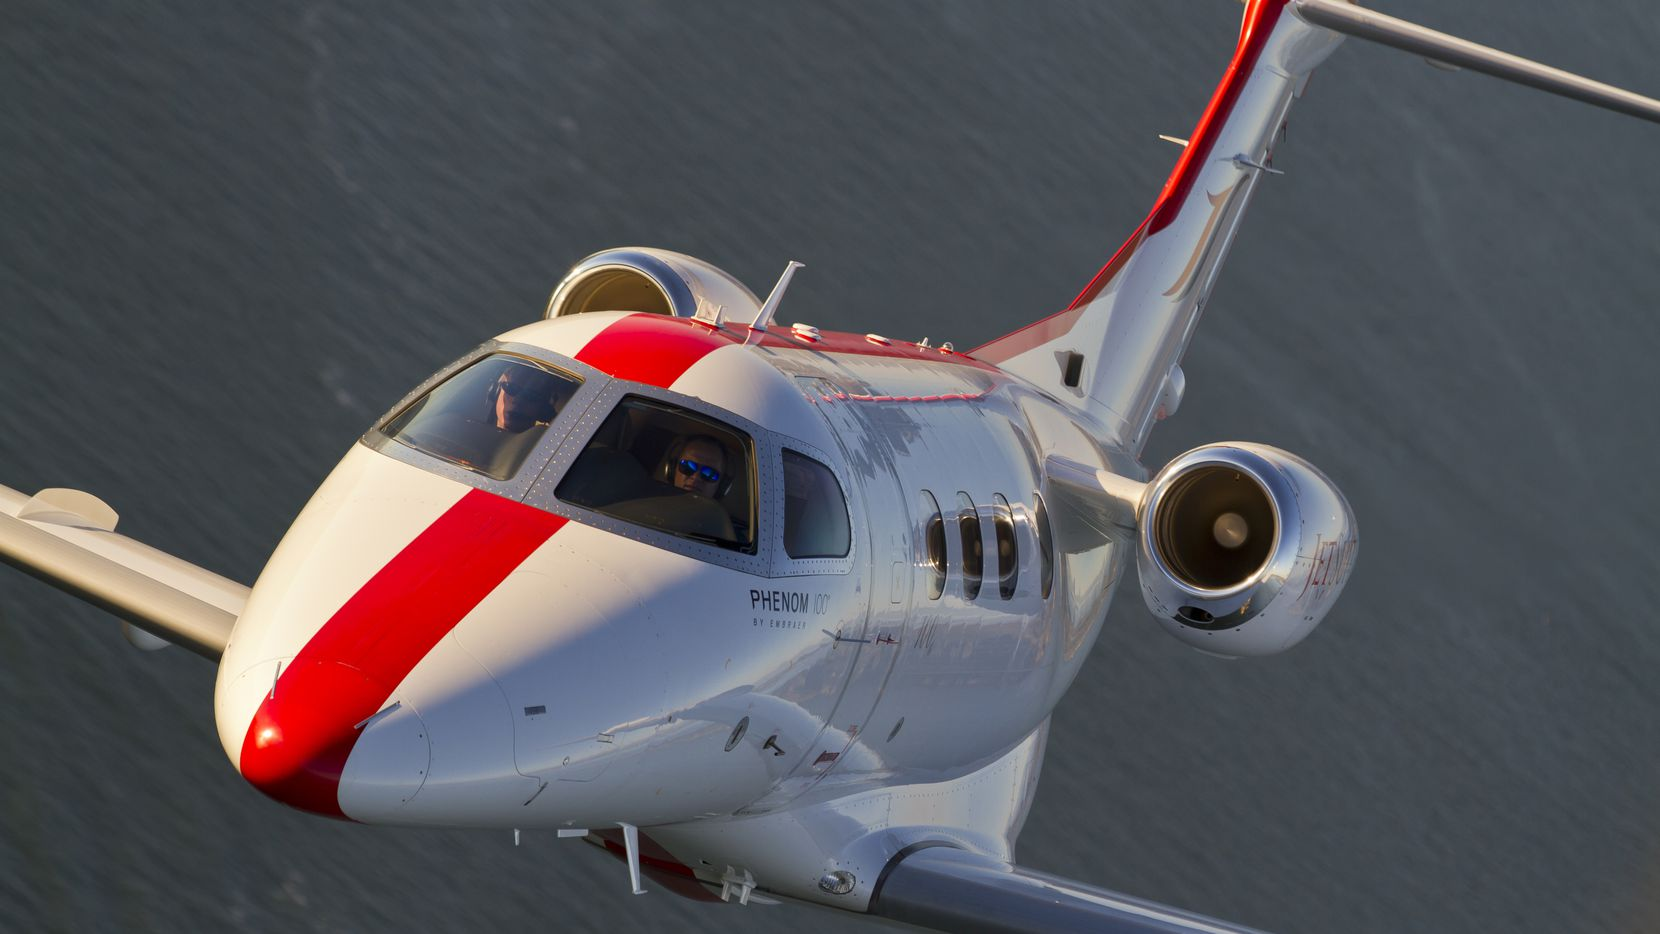 JetSuite catered to upscale travelers who wanted on-demand flights not offered by commercial airlines.